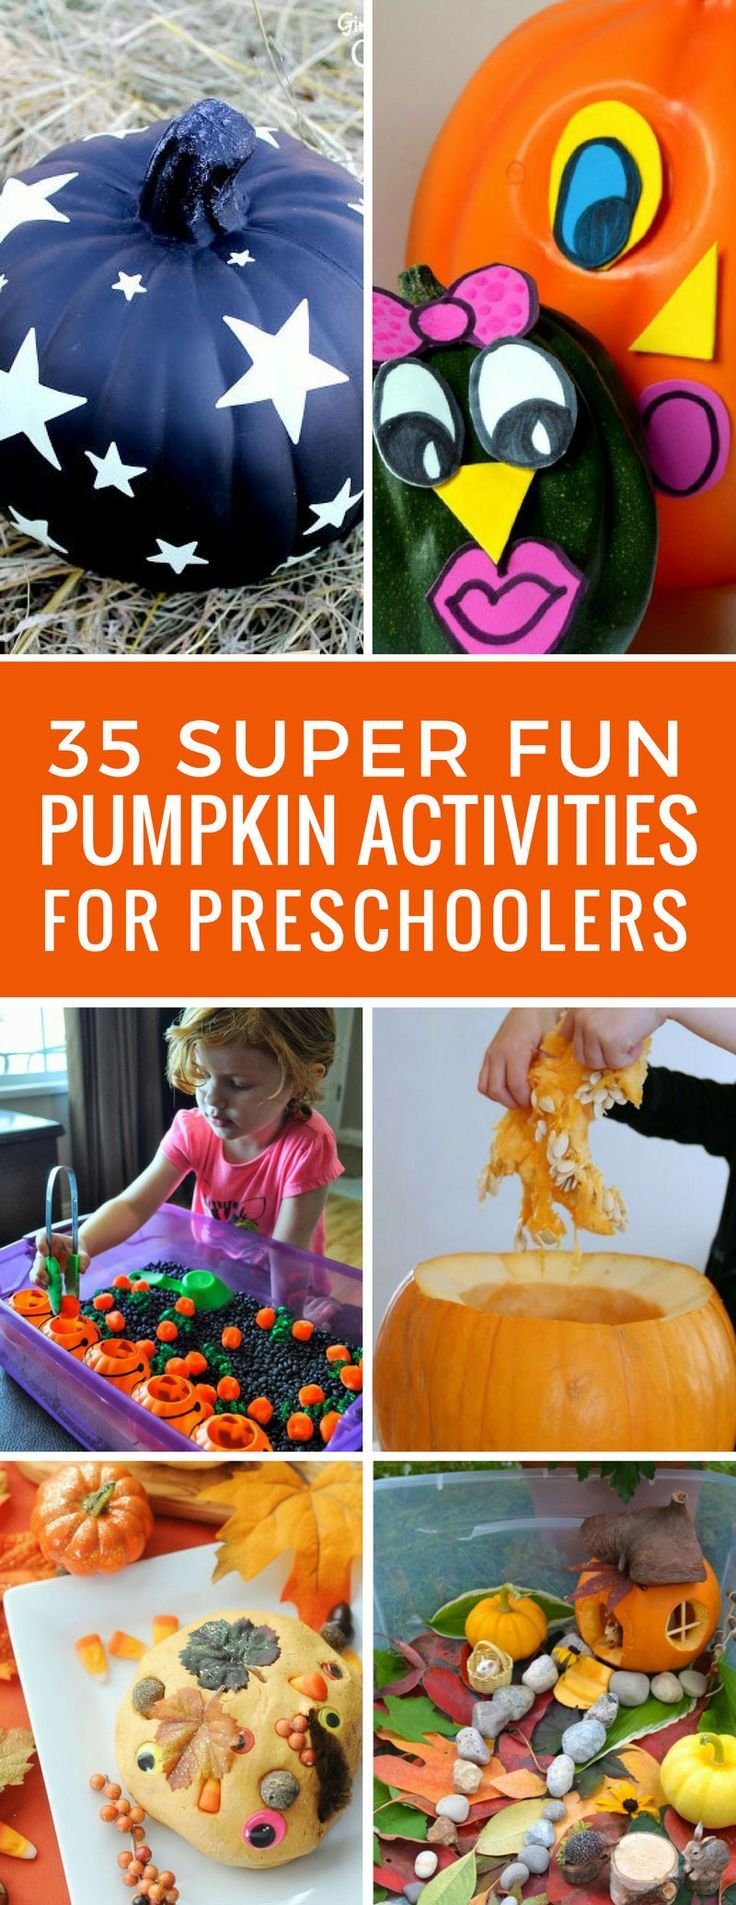 Loving these pumpkin activities for preschoolers -great ideas for learning with pumpkins this fall!